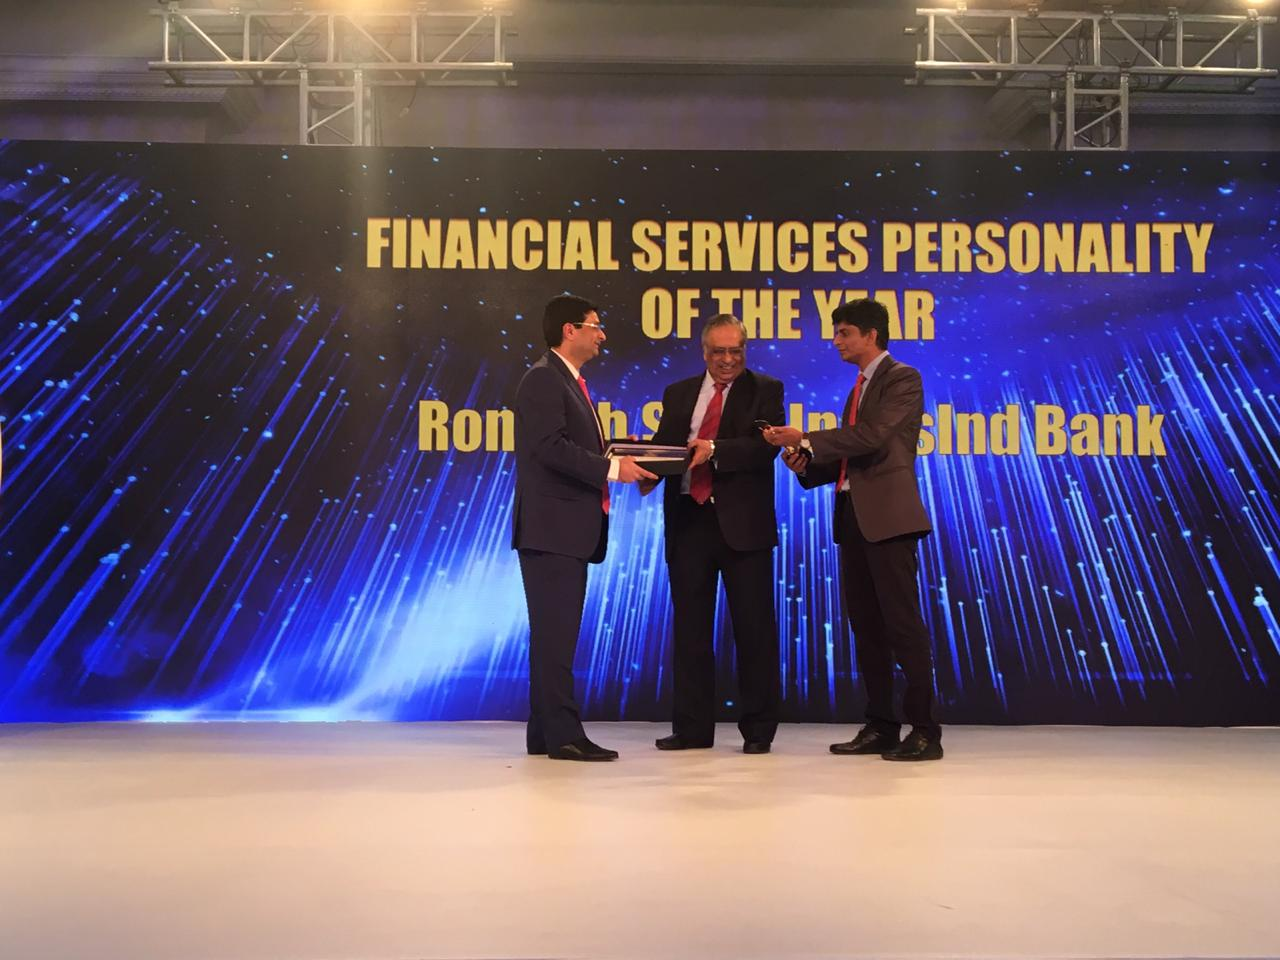 Financial services personality of the year: Romesh Sobti, IndusInd Bank | Sobti is a career banker with 43 years of experience across 3 sectors of banking – public, foreign and private. He took over as MD & CEO of IndusInd Bank in February 2008. Prior to his stint with IndusInd, he was the Executive Vice President and Country Executive, India and Head, UAE and Sub-Continent, at ABN AMRO Bank N.V. He joined the bank in November 1990 as a chief manager and graduated to the Country Executive over a period of 18 years. In his banking career, Sobti has been associated with ANZ Grindlays Bank (now Standard Chartered Bank) and country's biggest lender State Bank of India. He holds a Bachelor's Degree (Honours) in Electrical Engineering and a Diploma in Corporate Laws and Secretarial Practice. (Image: Moneycontrol)